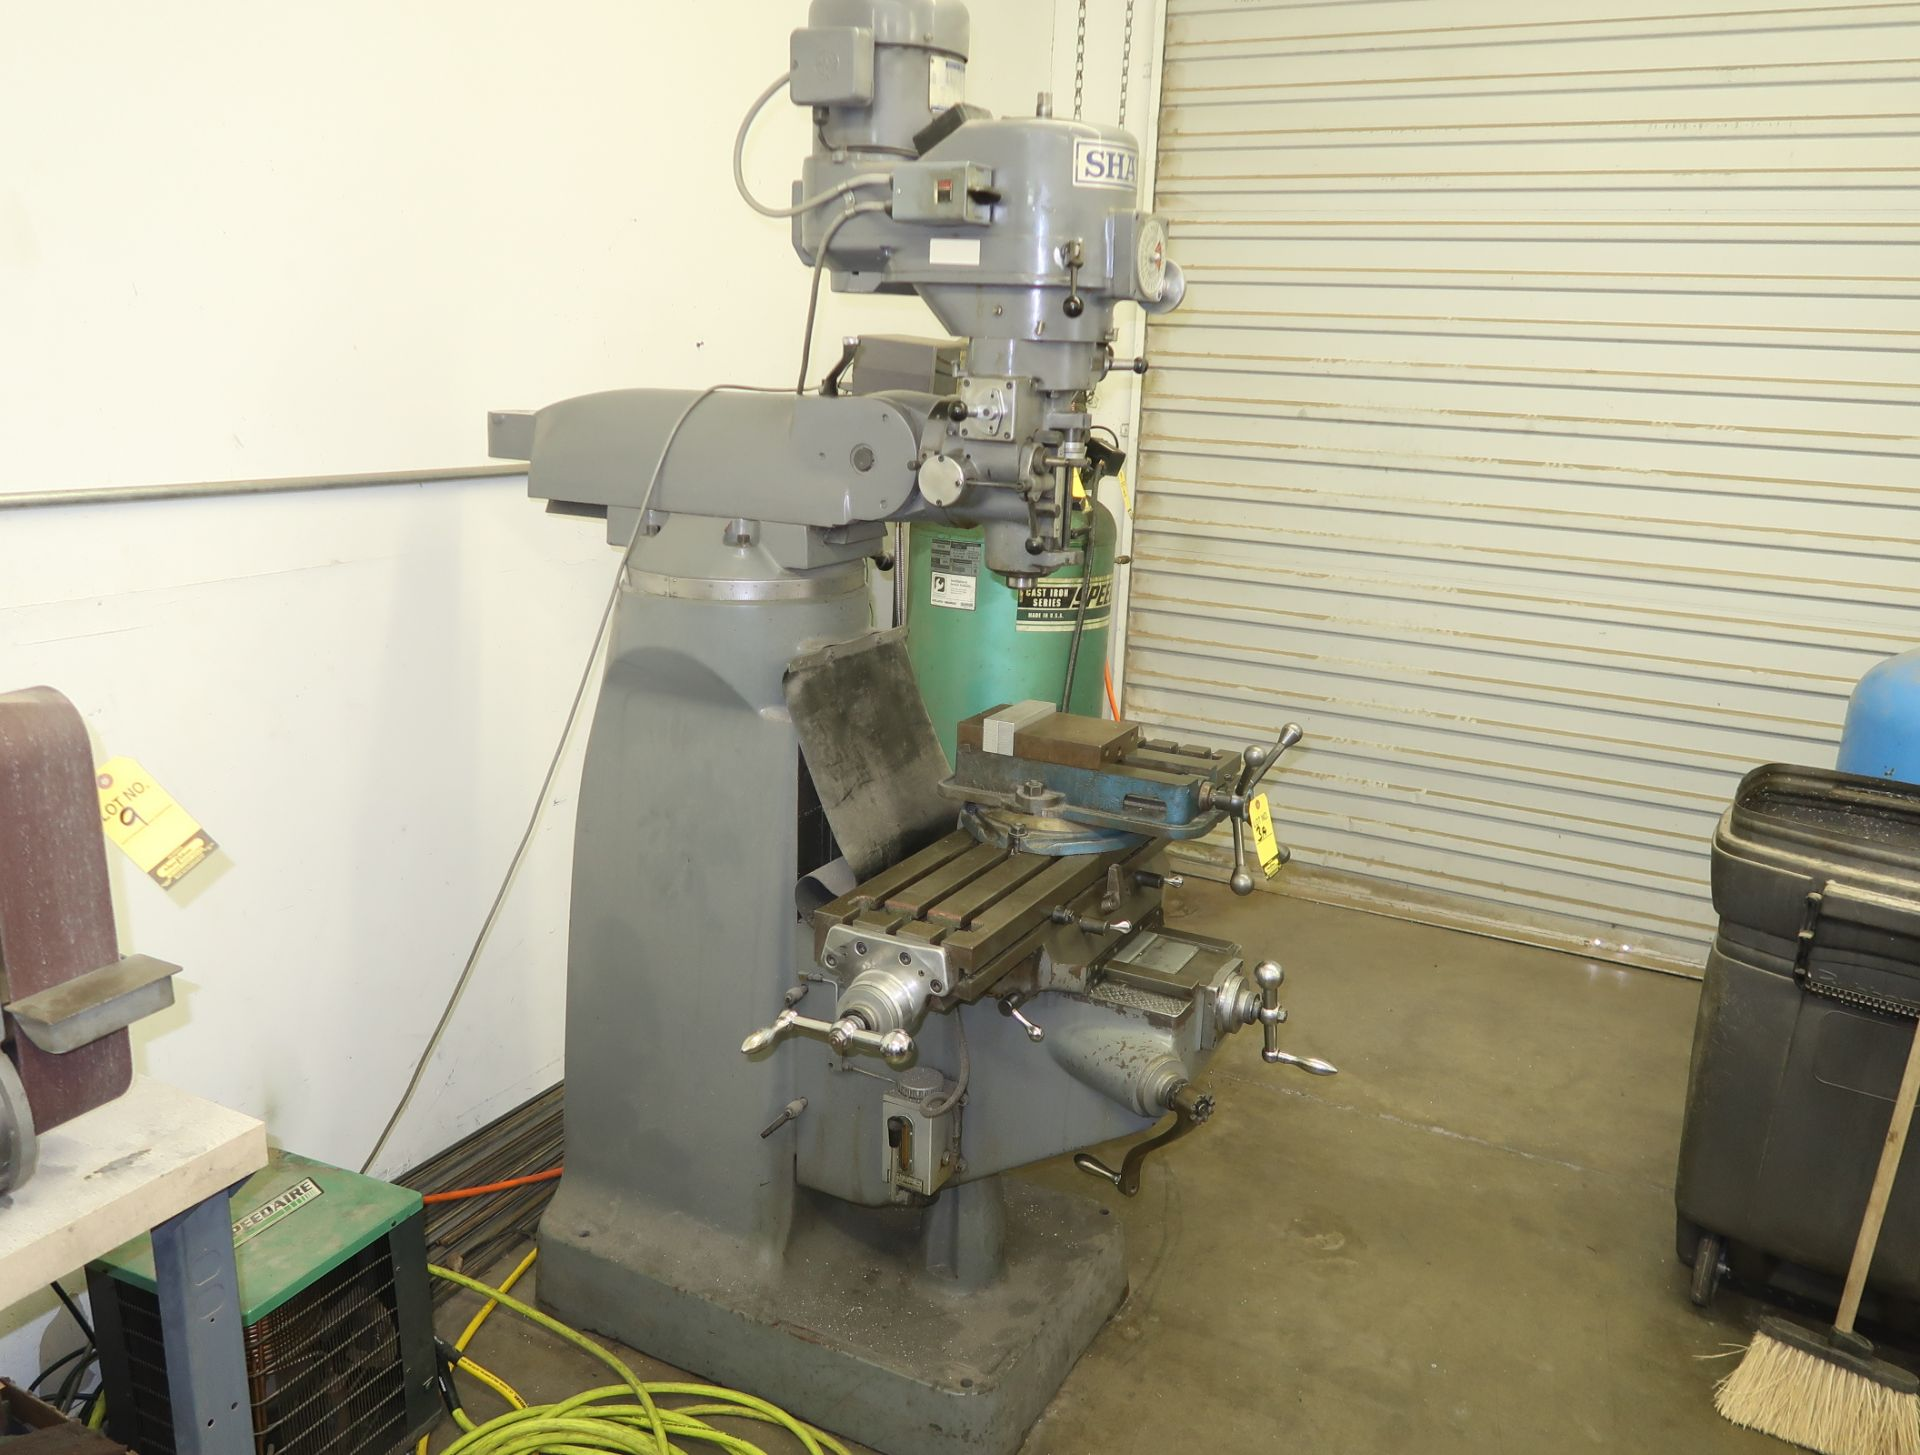 Lot 3 - SHARP MDL. LMV VERTICAL KNEE MILL W/2-AXIS DRO, SN. 01016452